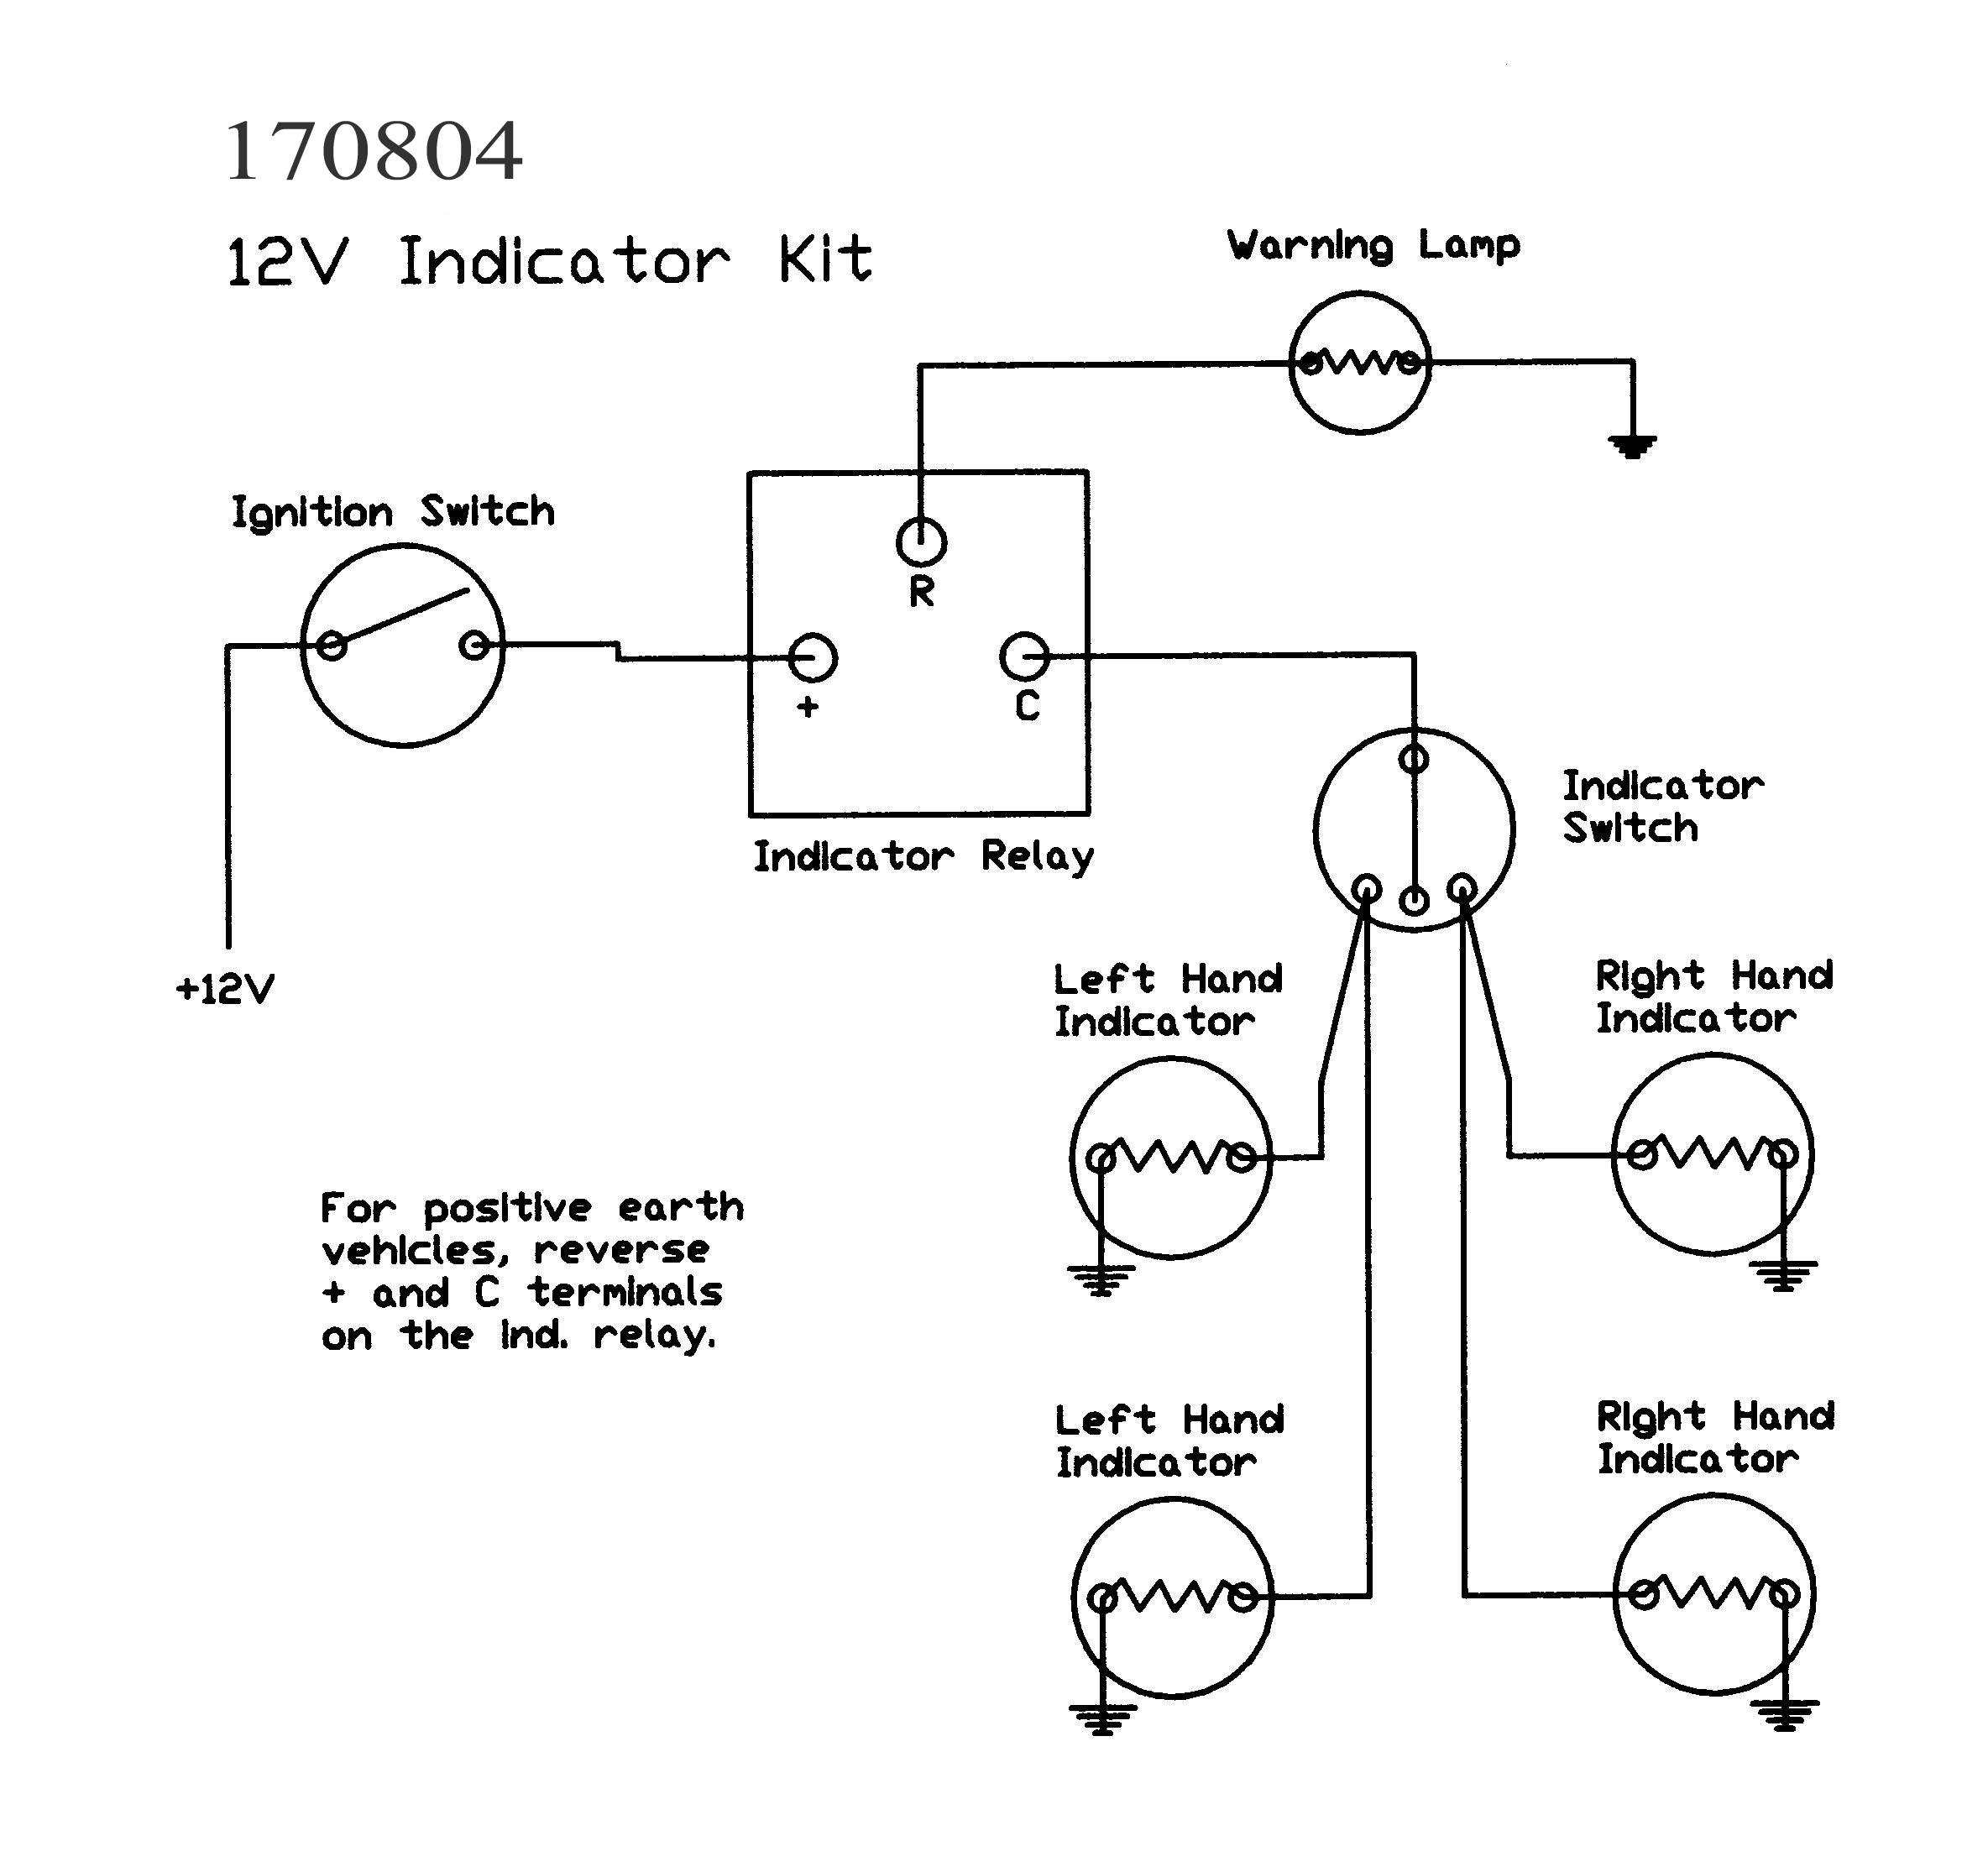 170804_(12v)_schematic?resize=665%2C625&ssl=1 flasher wiring diagram the best wiring diagram 2017 flasher unit wiring diagram at fashall.co